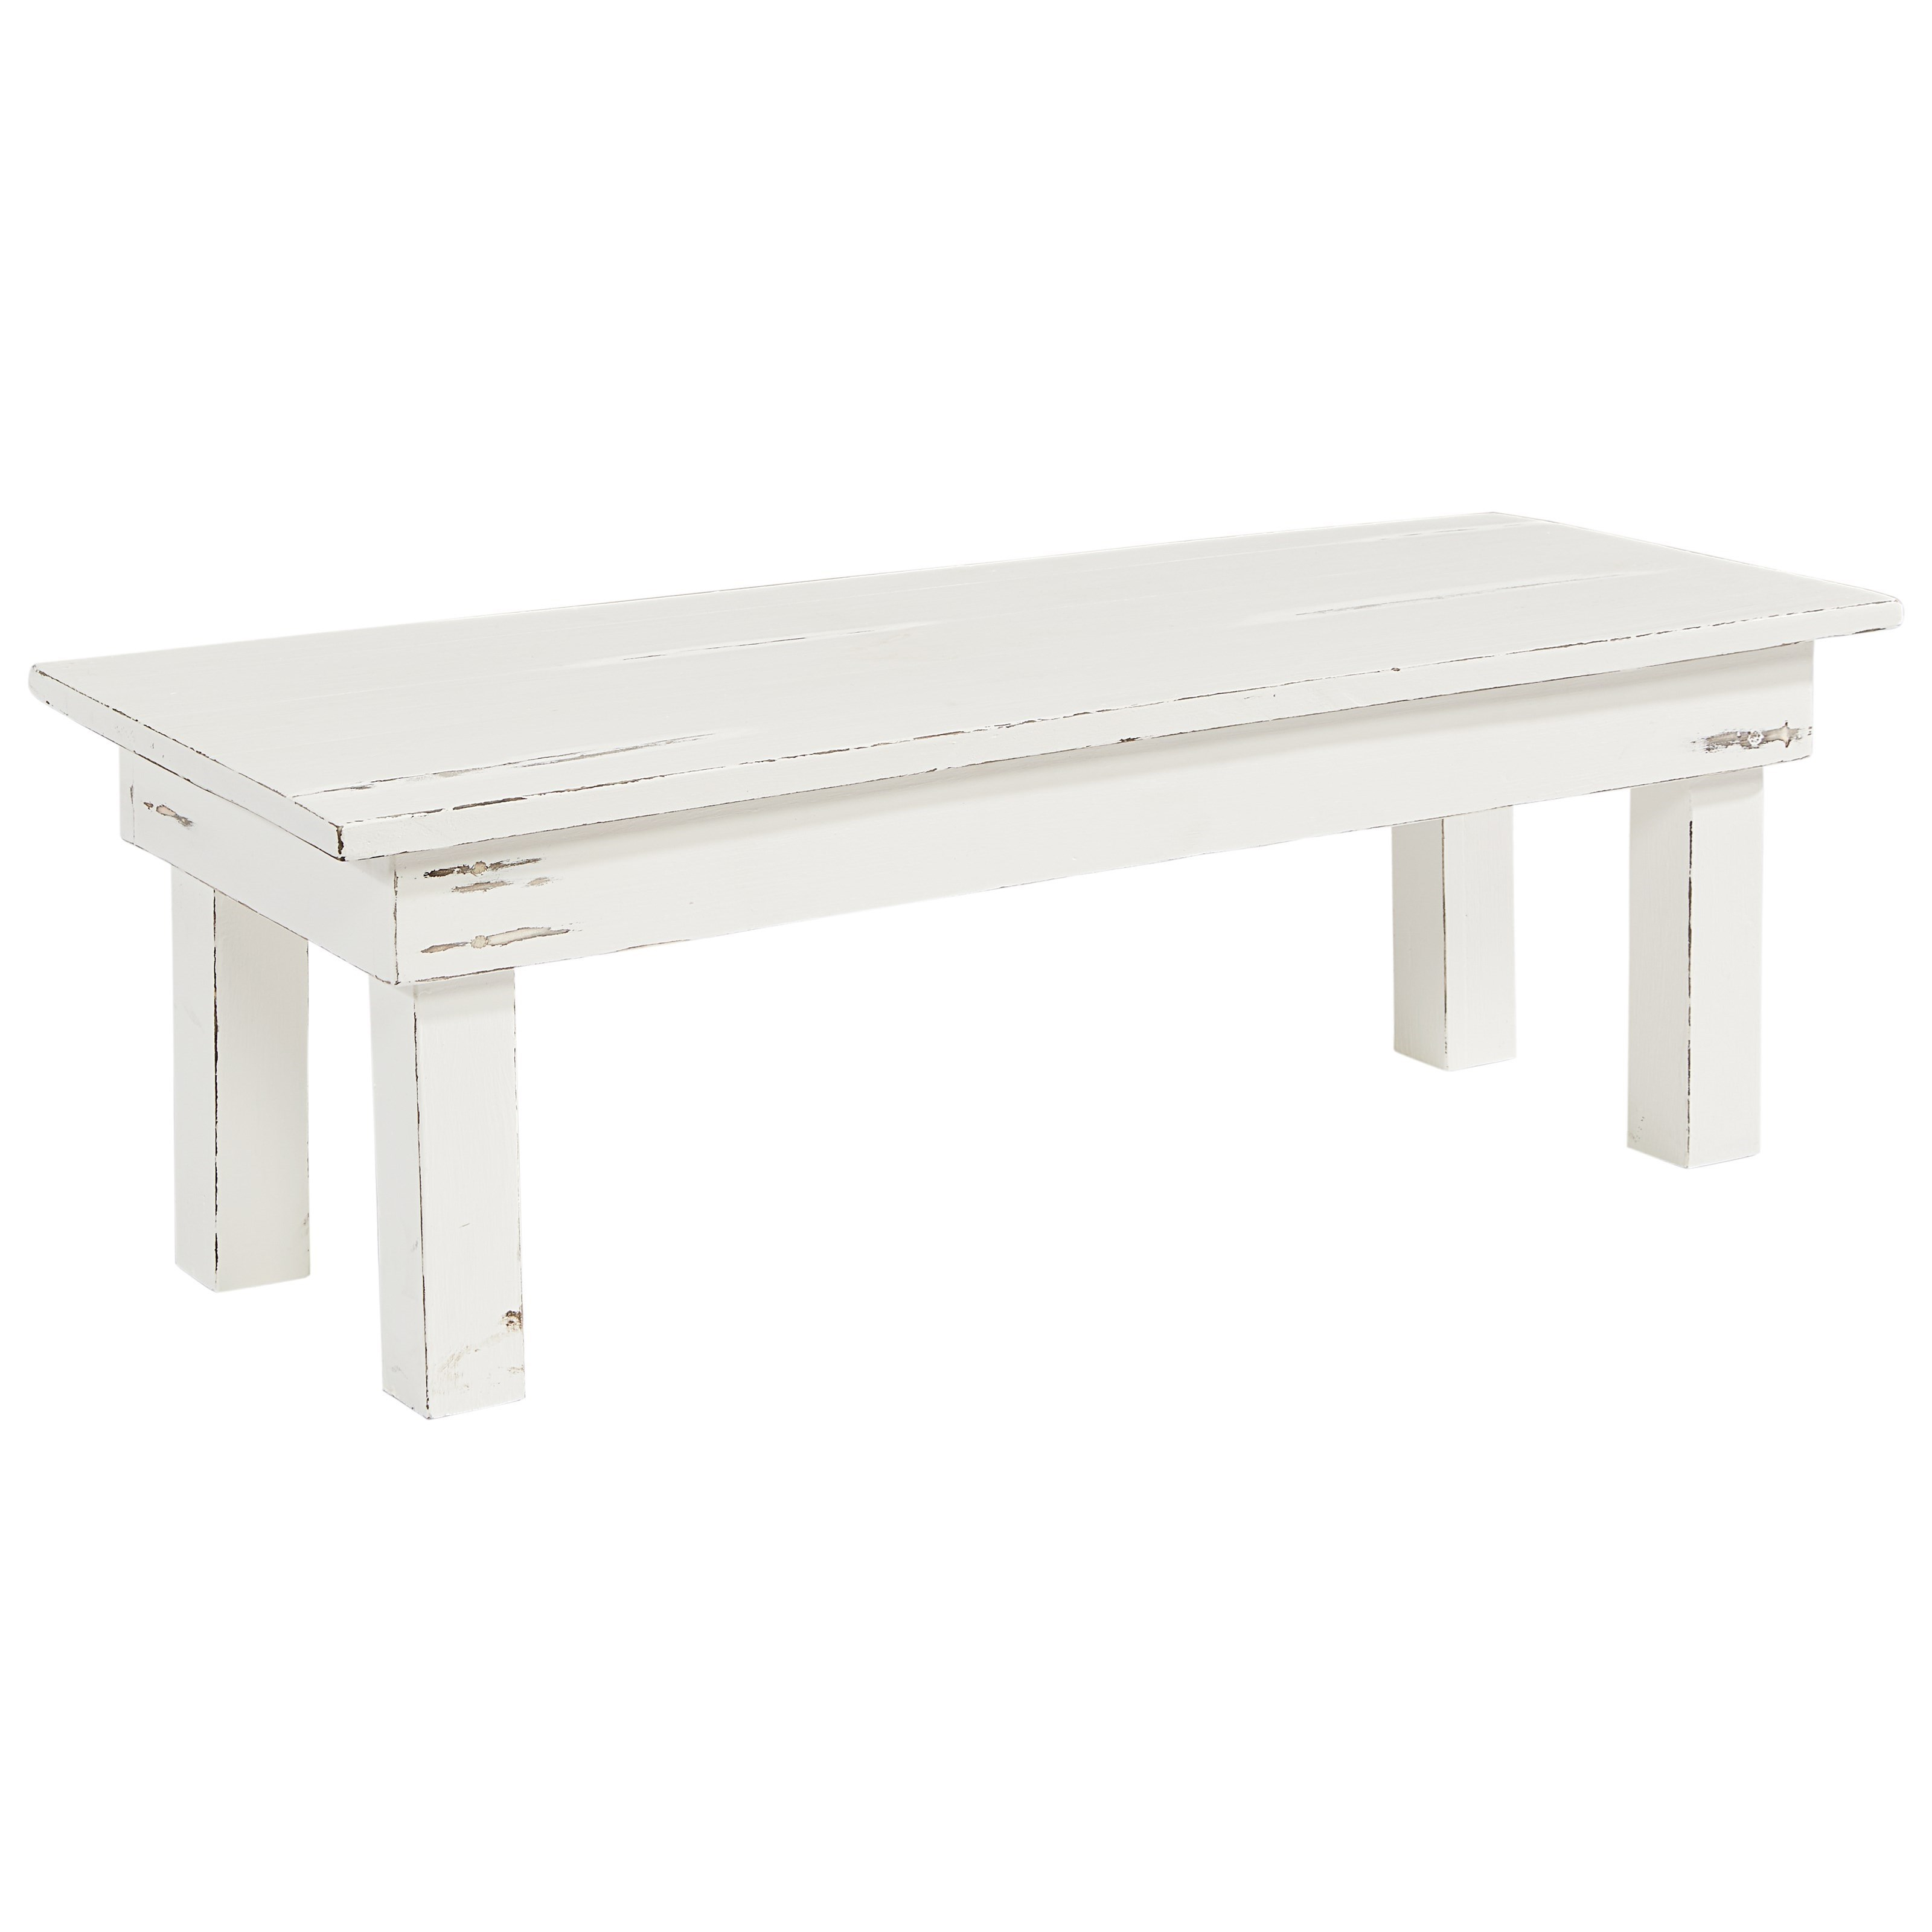 Magnolia Home by Joanna Gaines Farmhouse Kid's Haven Bench - Item Number: 6170649B